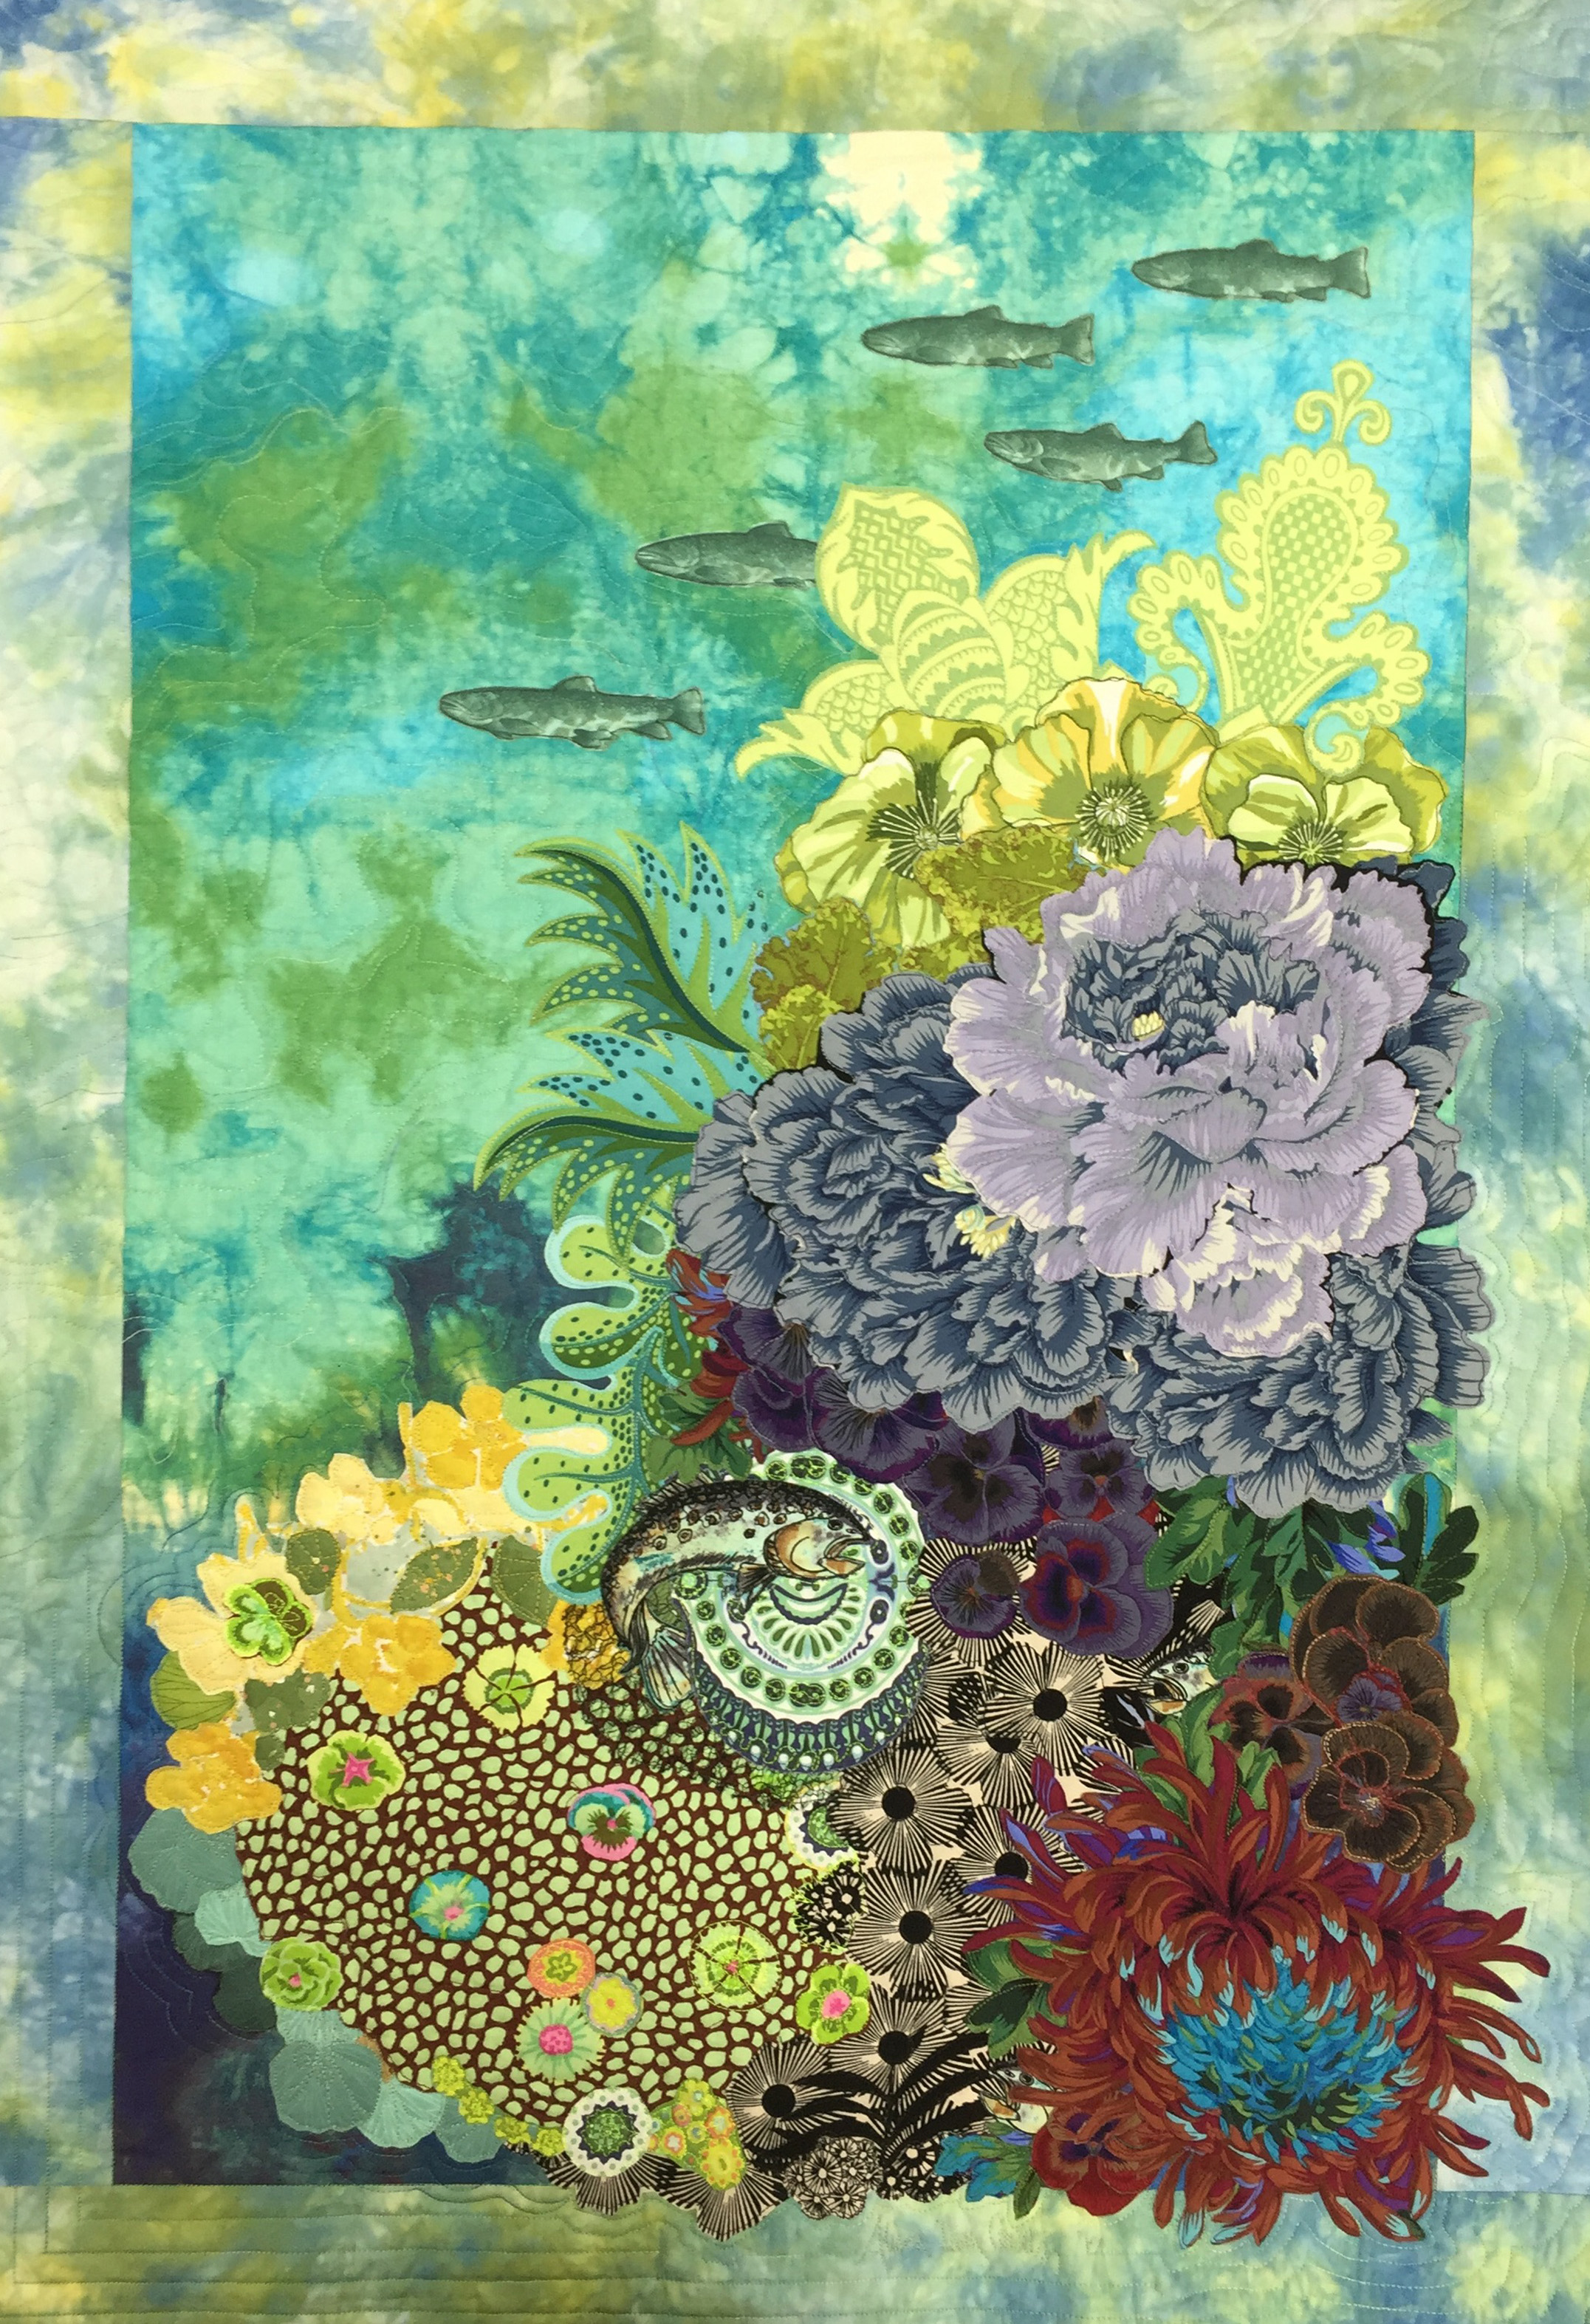 "Underwater Illusion - 24"" x 36"" - Jan 2017Private Collection - Kansas, USAInspired by bold floral printed fabrics and underwater experiences I set out to interpret my scuba diving experience underwater. Mixing hand dyed fabrics and commercial motif patterns designed and collaged an ideal underwater garden."